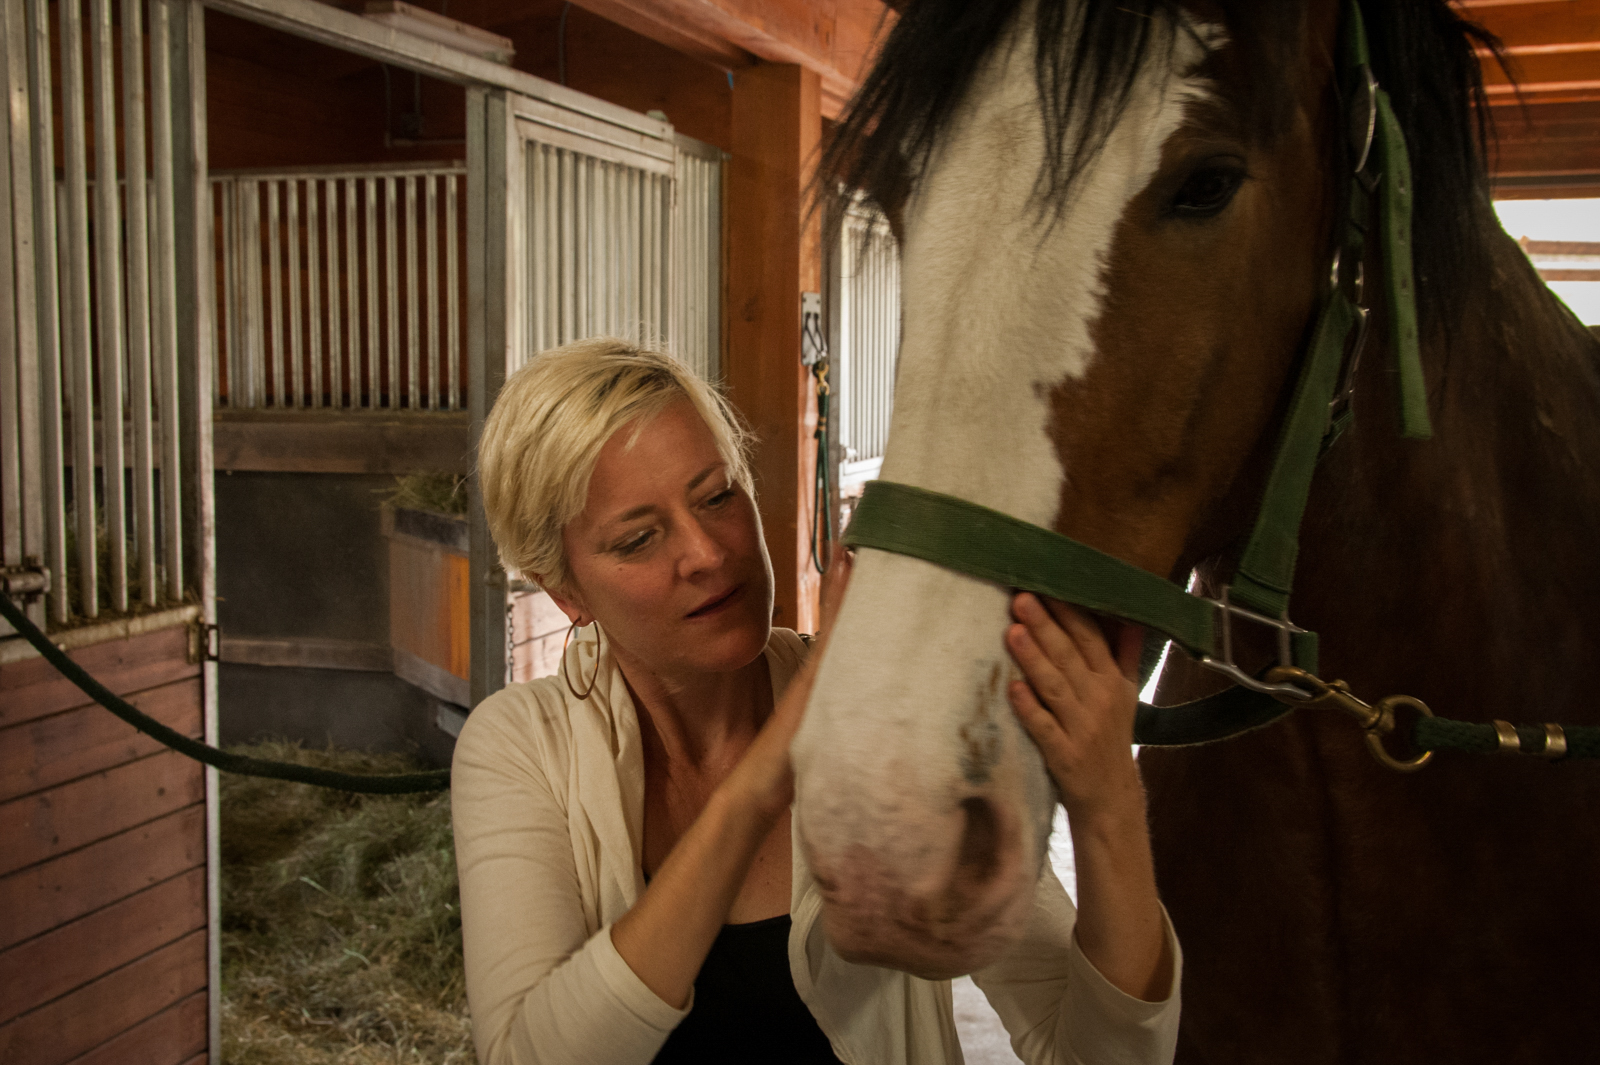 A moment in the barn with a retired Clydesdale horse